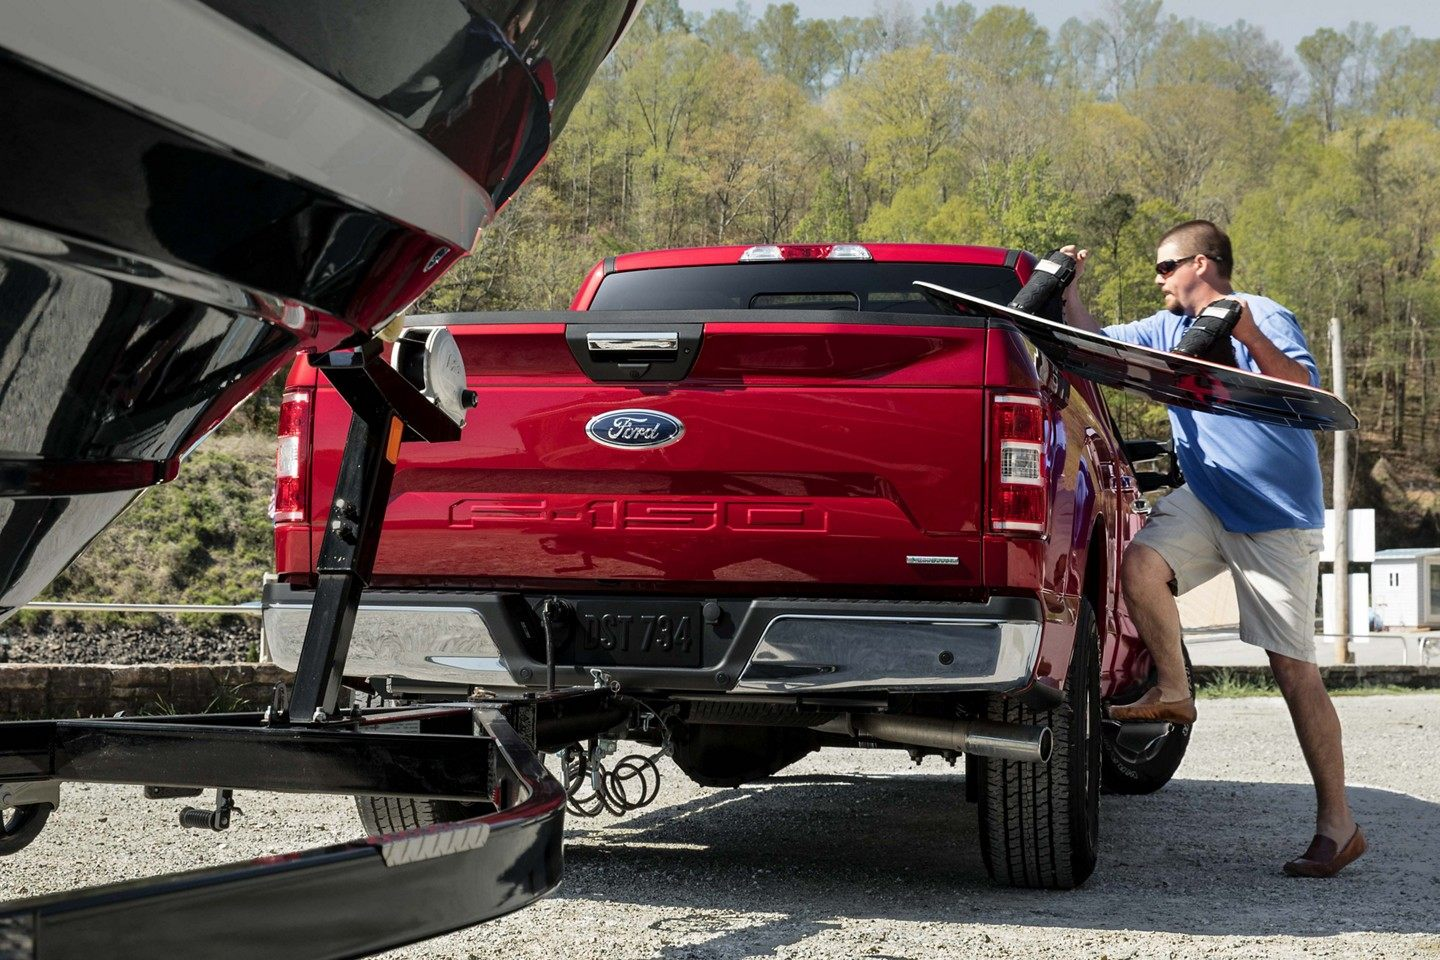 2019 Ford F-150 Red Exterior Rear View Picture.jpeg